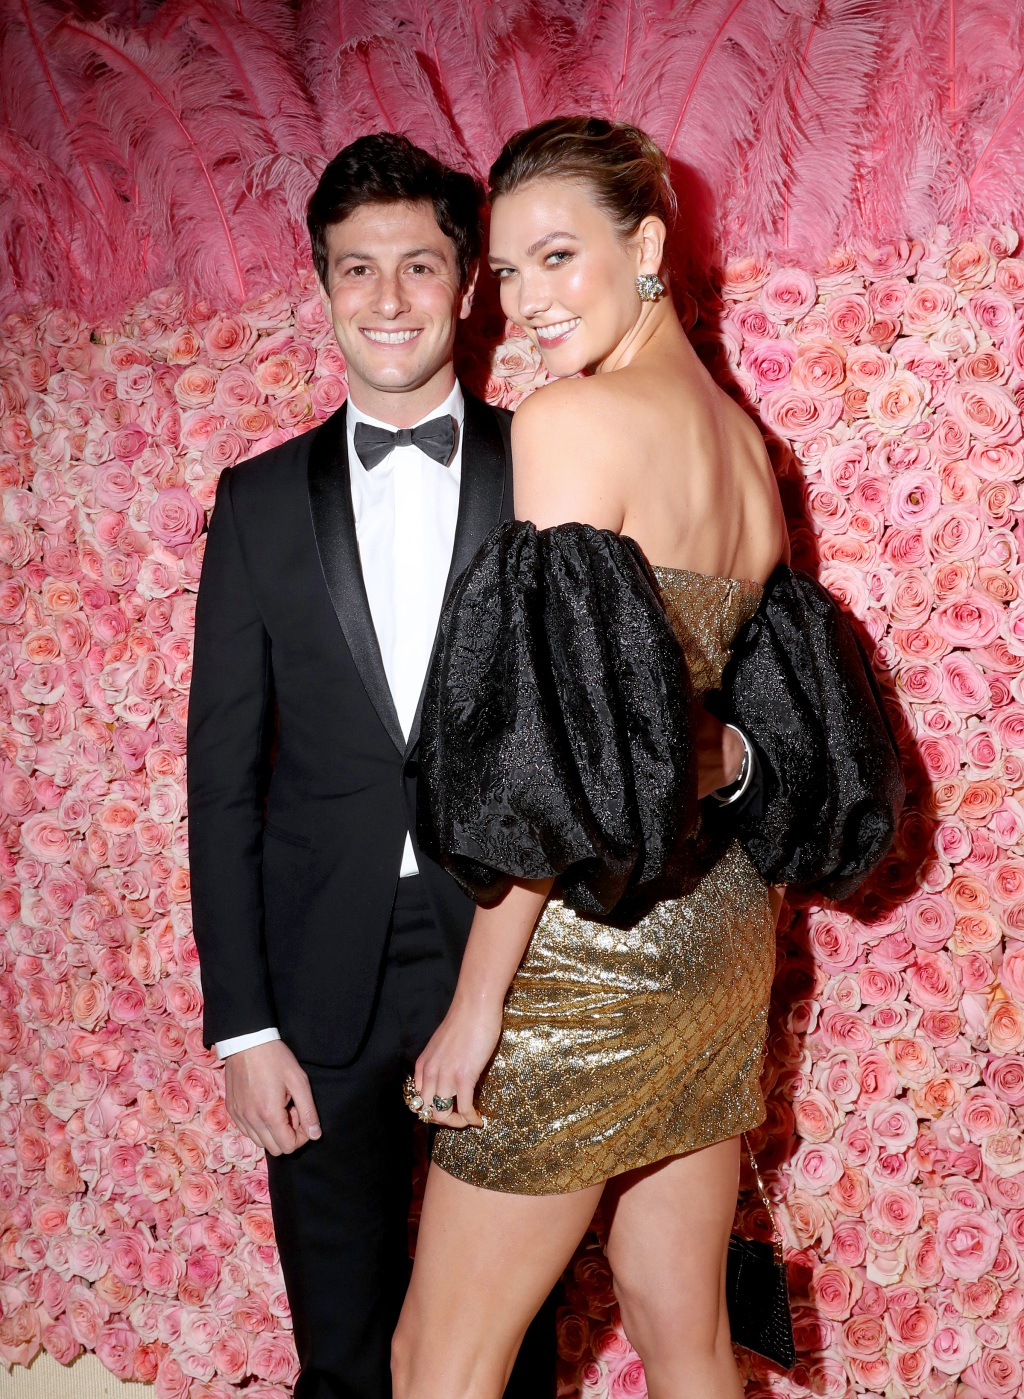 Joshua Kushner and Karlie Kloss